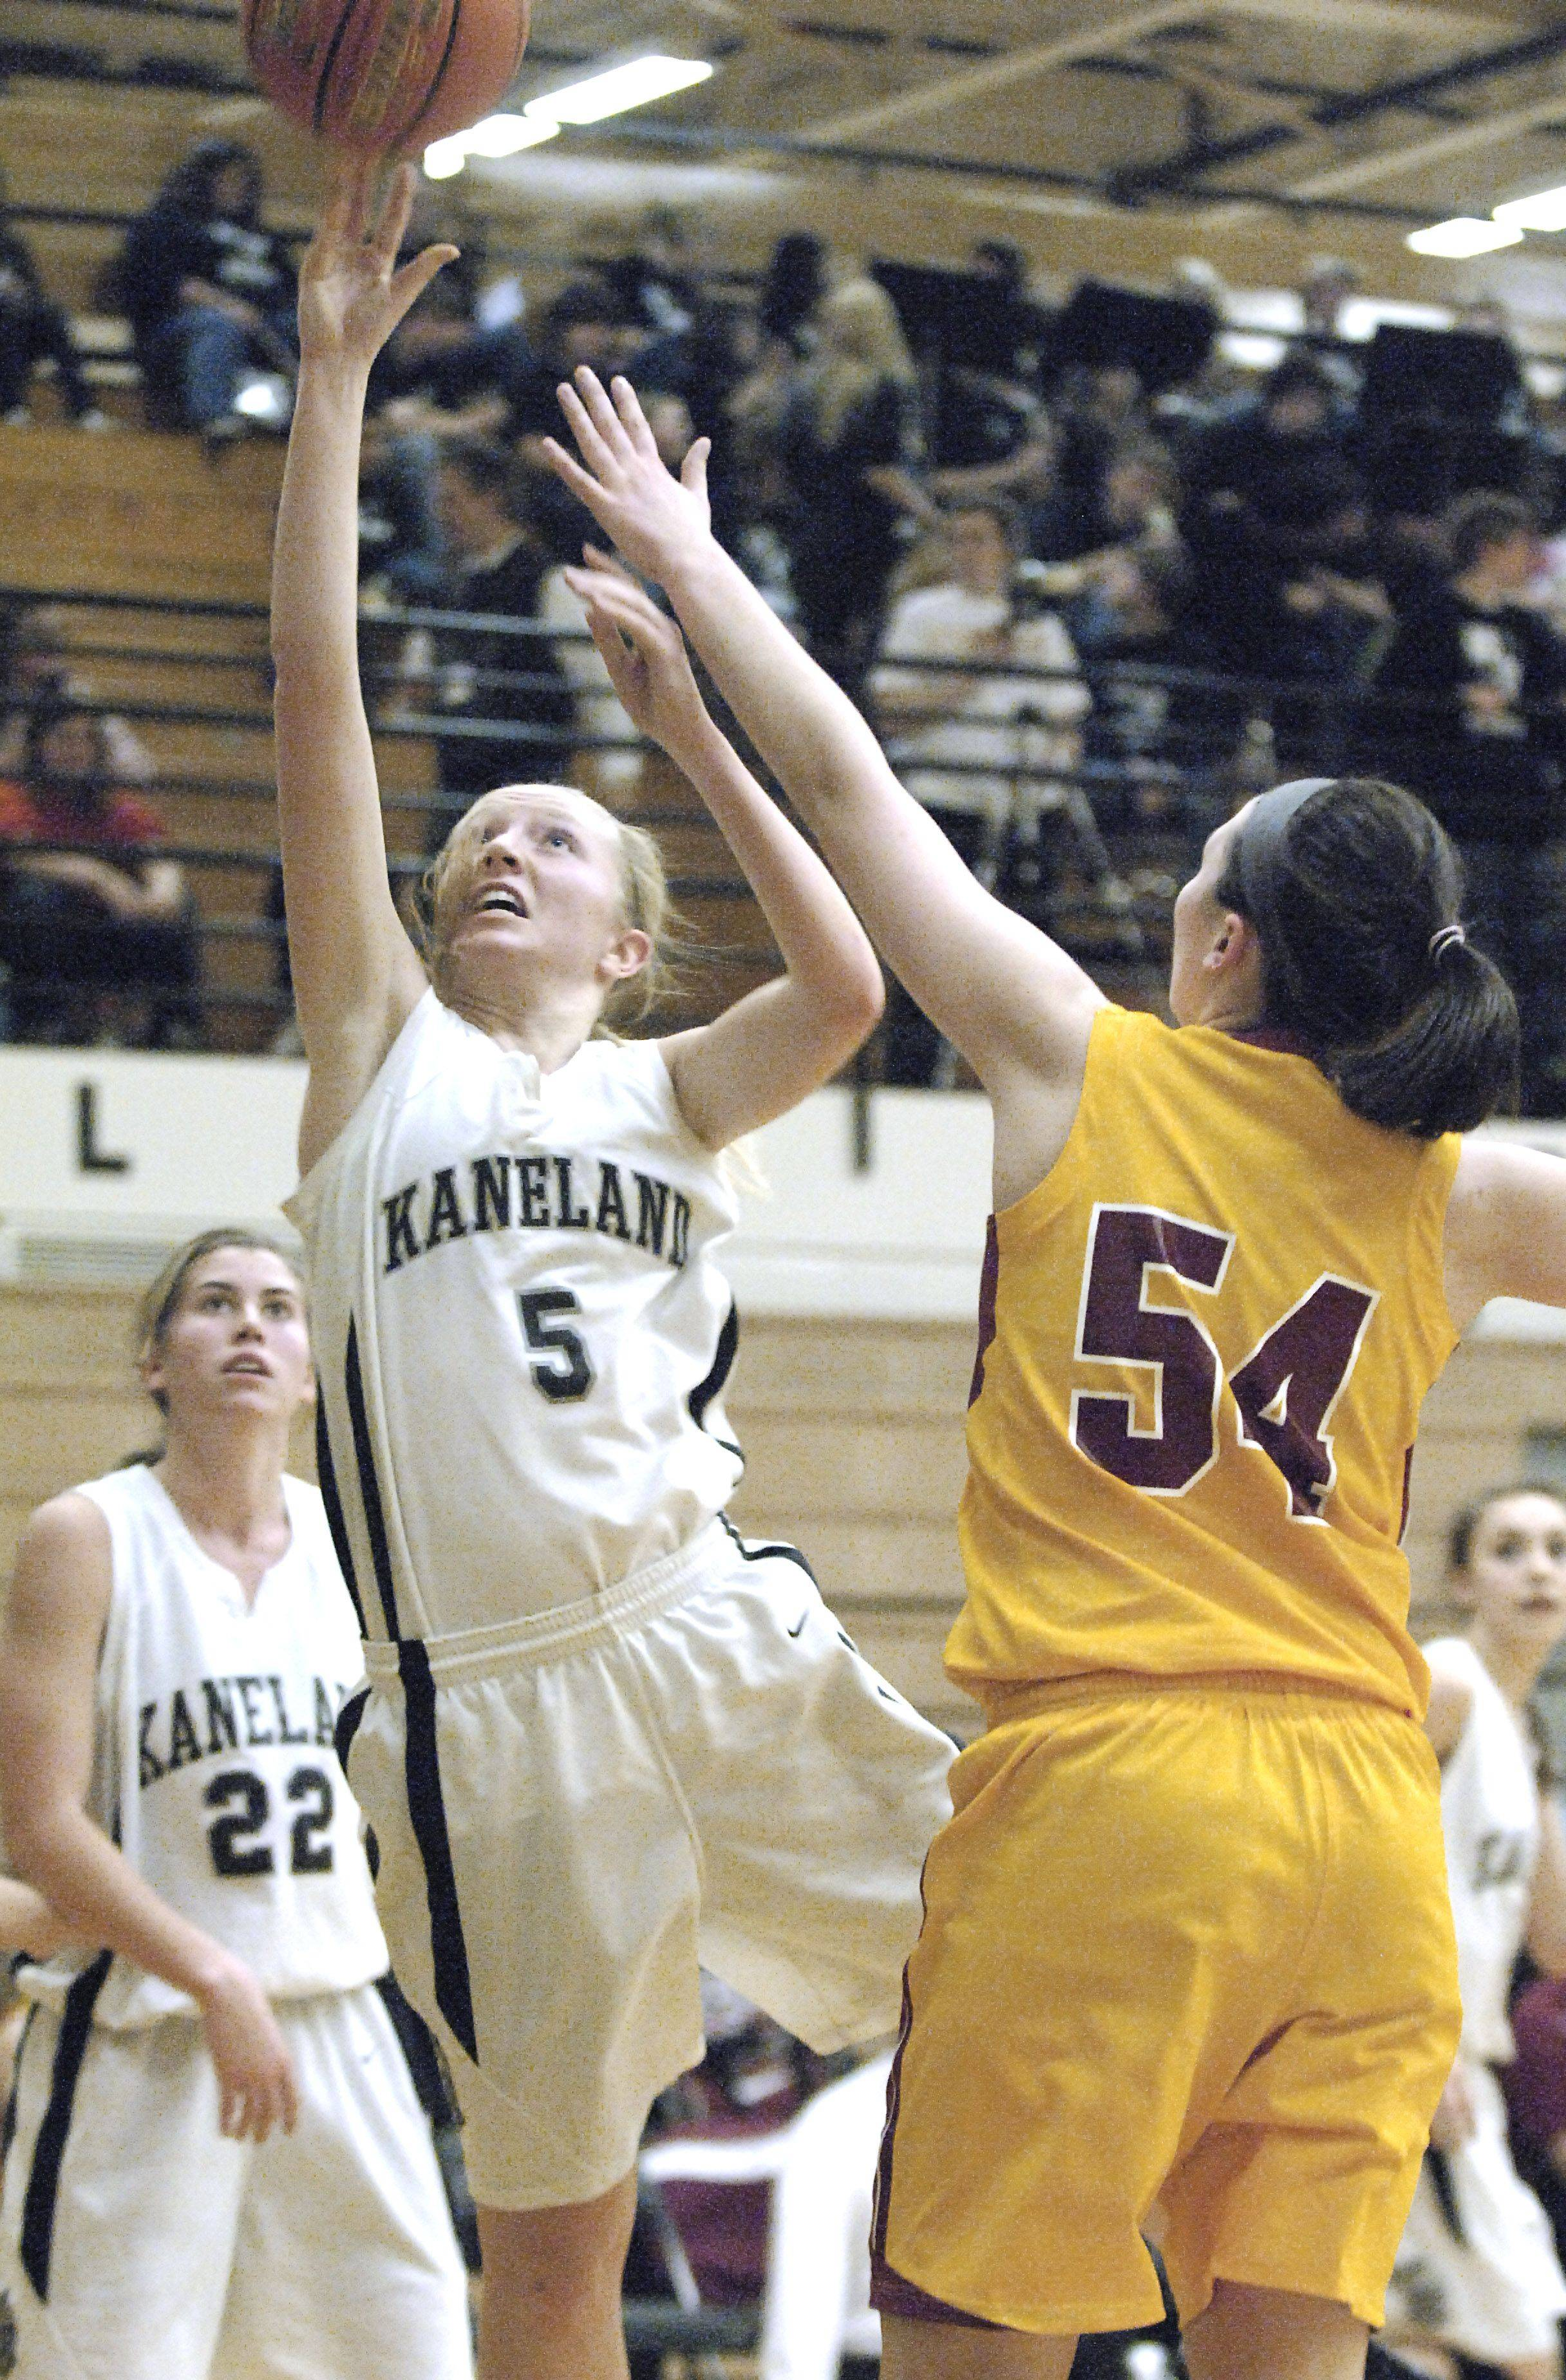 Kaneland rallies, then goes cold in overtime